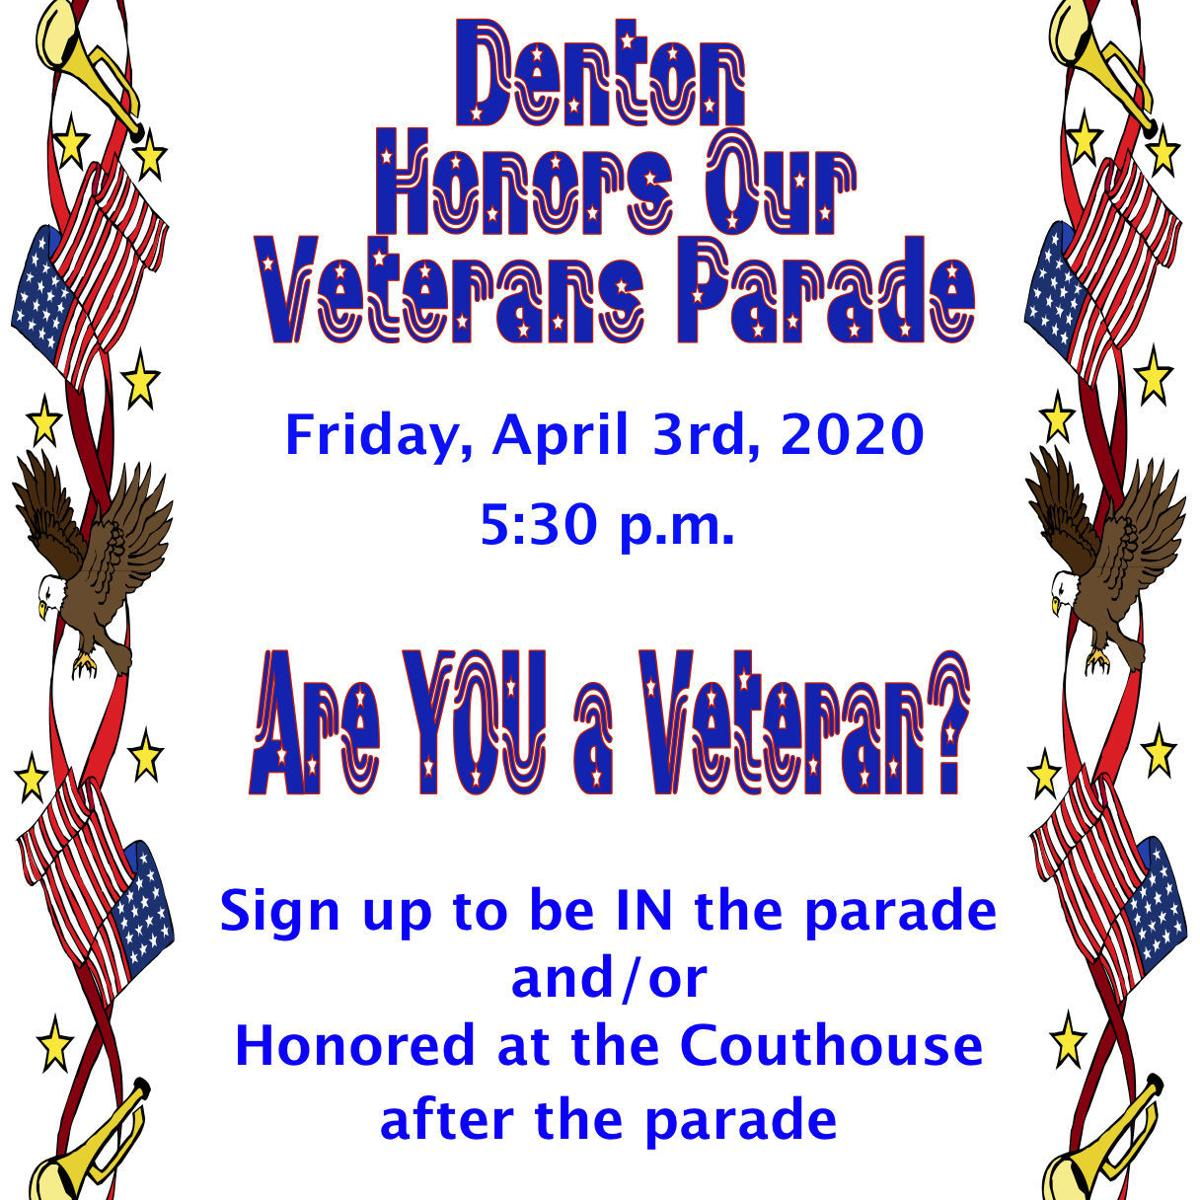 Denton to honor local veterans with parade